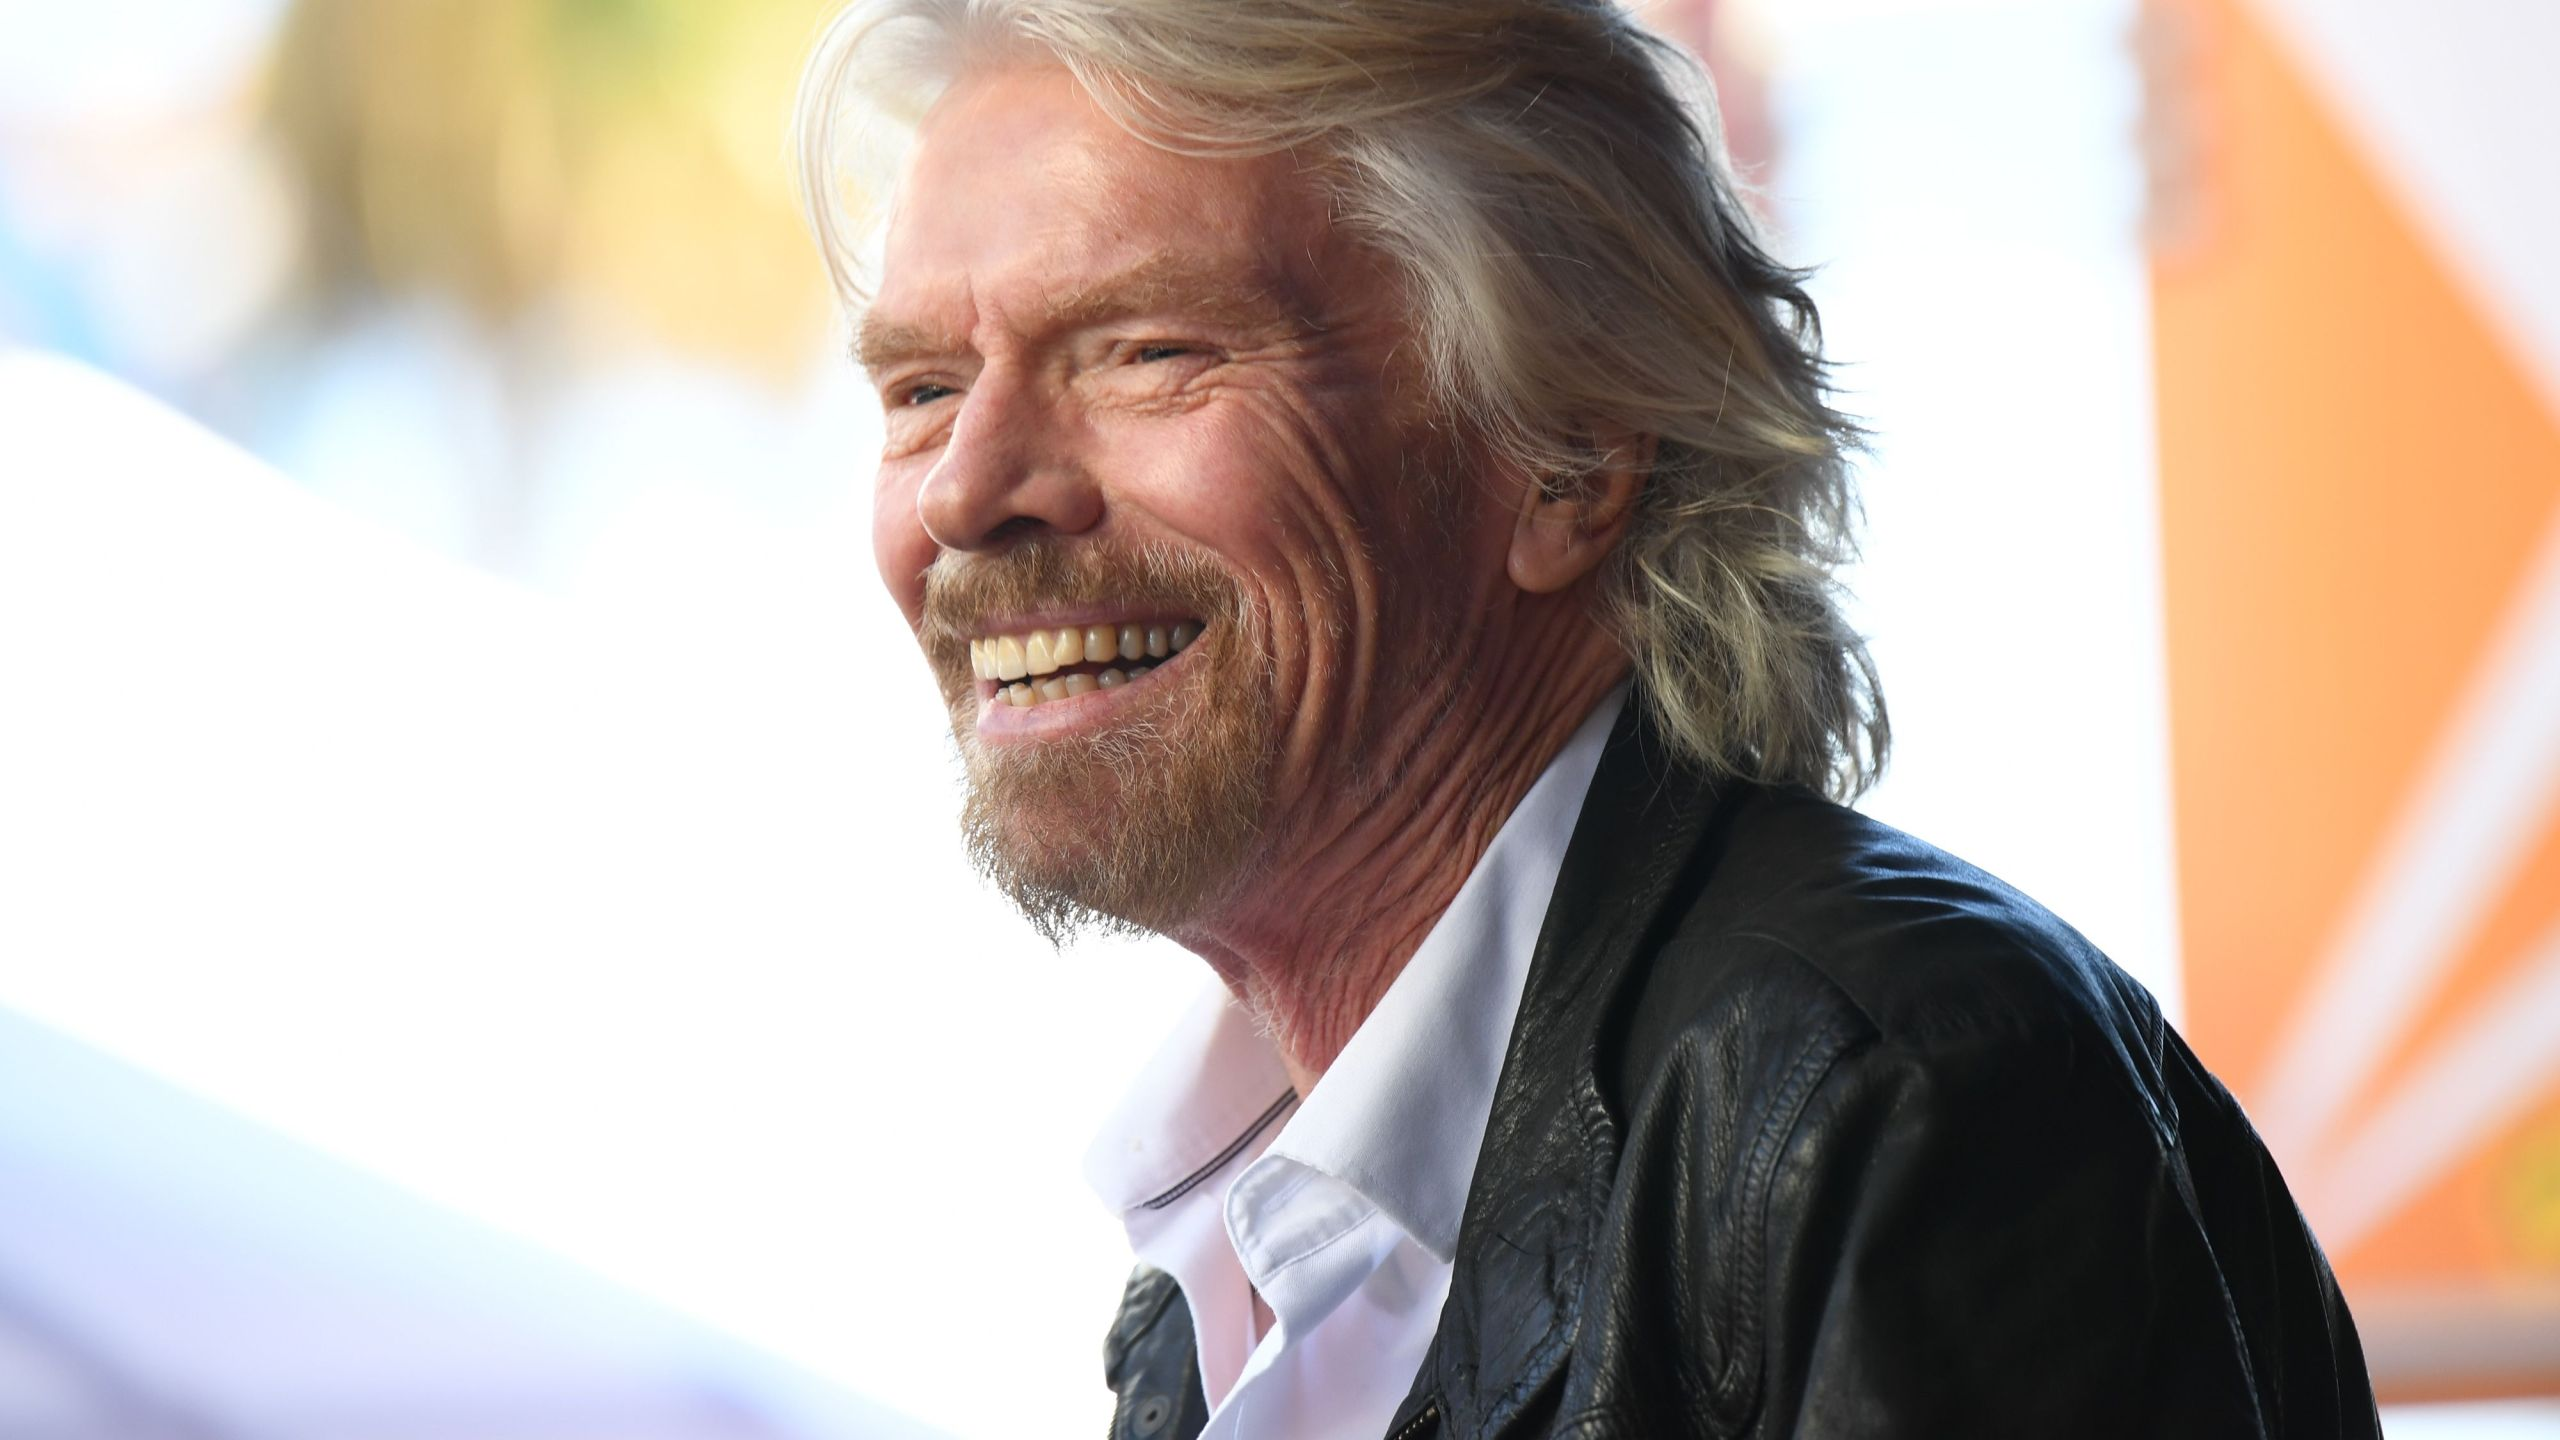 Sir Richard Branson attends his Hollywood Walk of Fame star unveiling ceremony, October 16, 2018 in Hollywood, California. (Credit: ROBYN BECK/AFP/Getty Images)